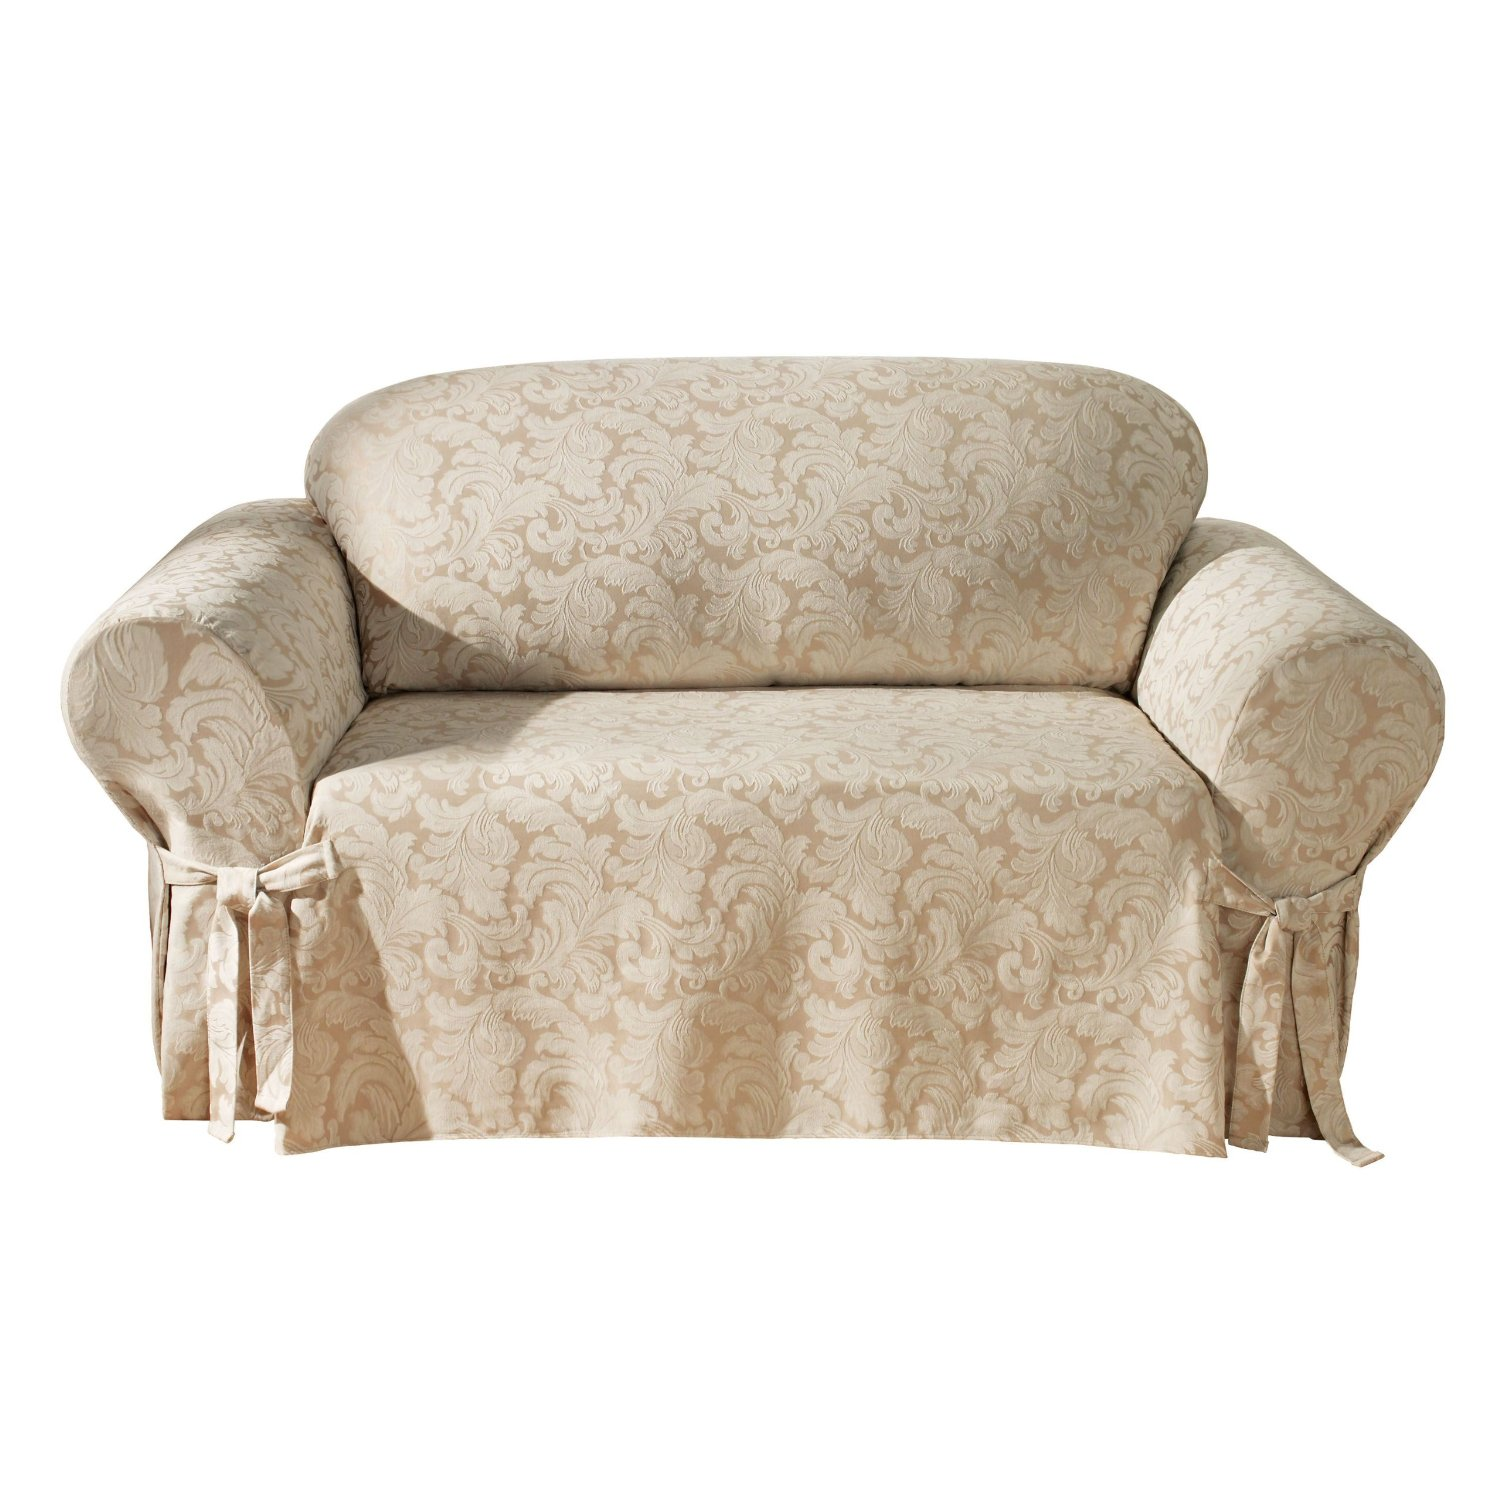 Furniture Mesmerizing Oversized Chair Slipcover For Home